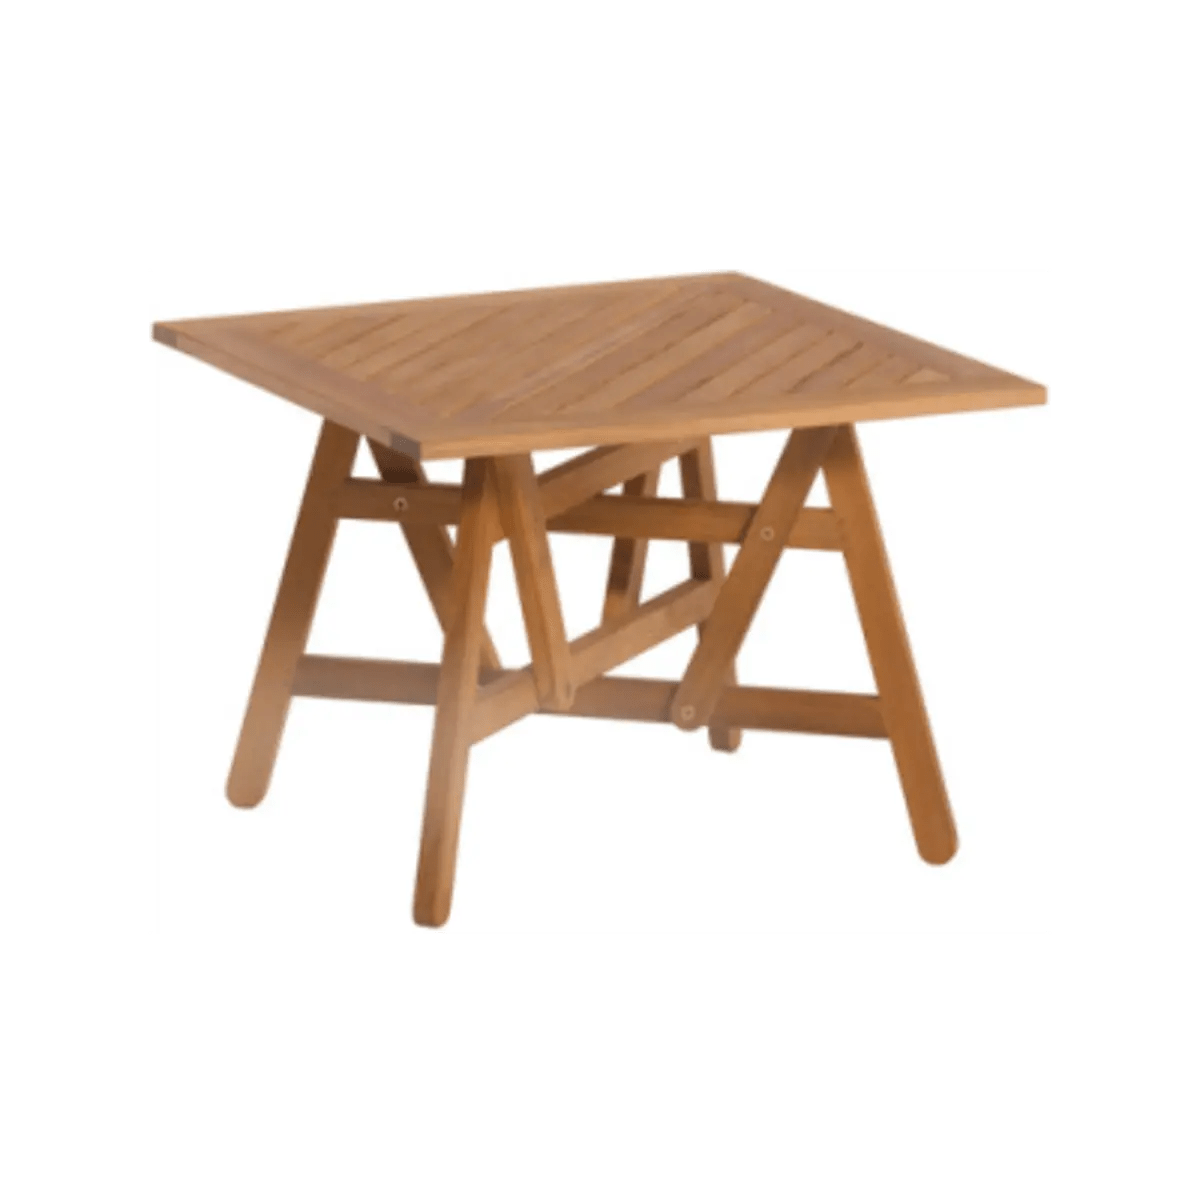 Outdoor Teppich Pfister Nods Folding Table Rectangular By Atelier Pfister Dining